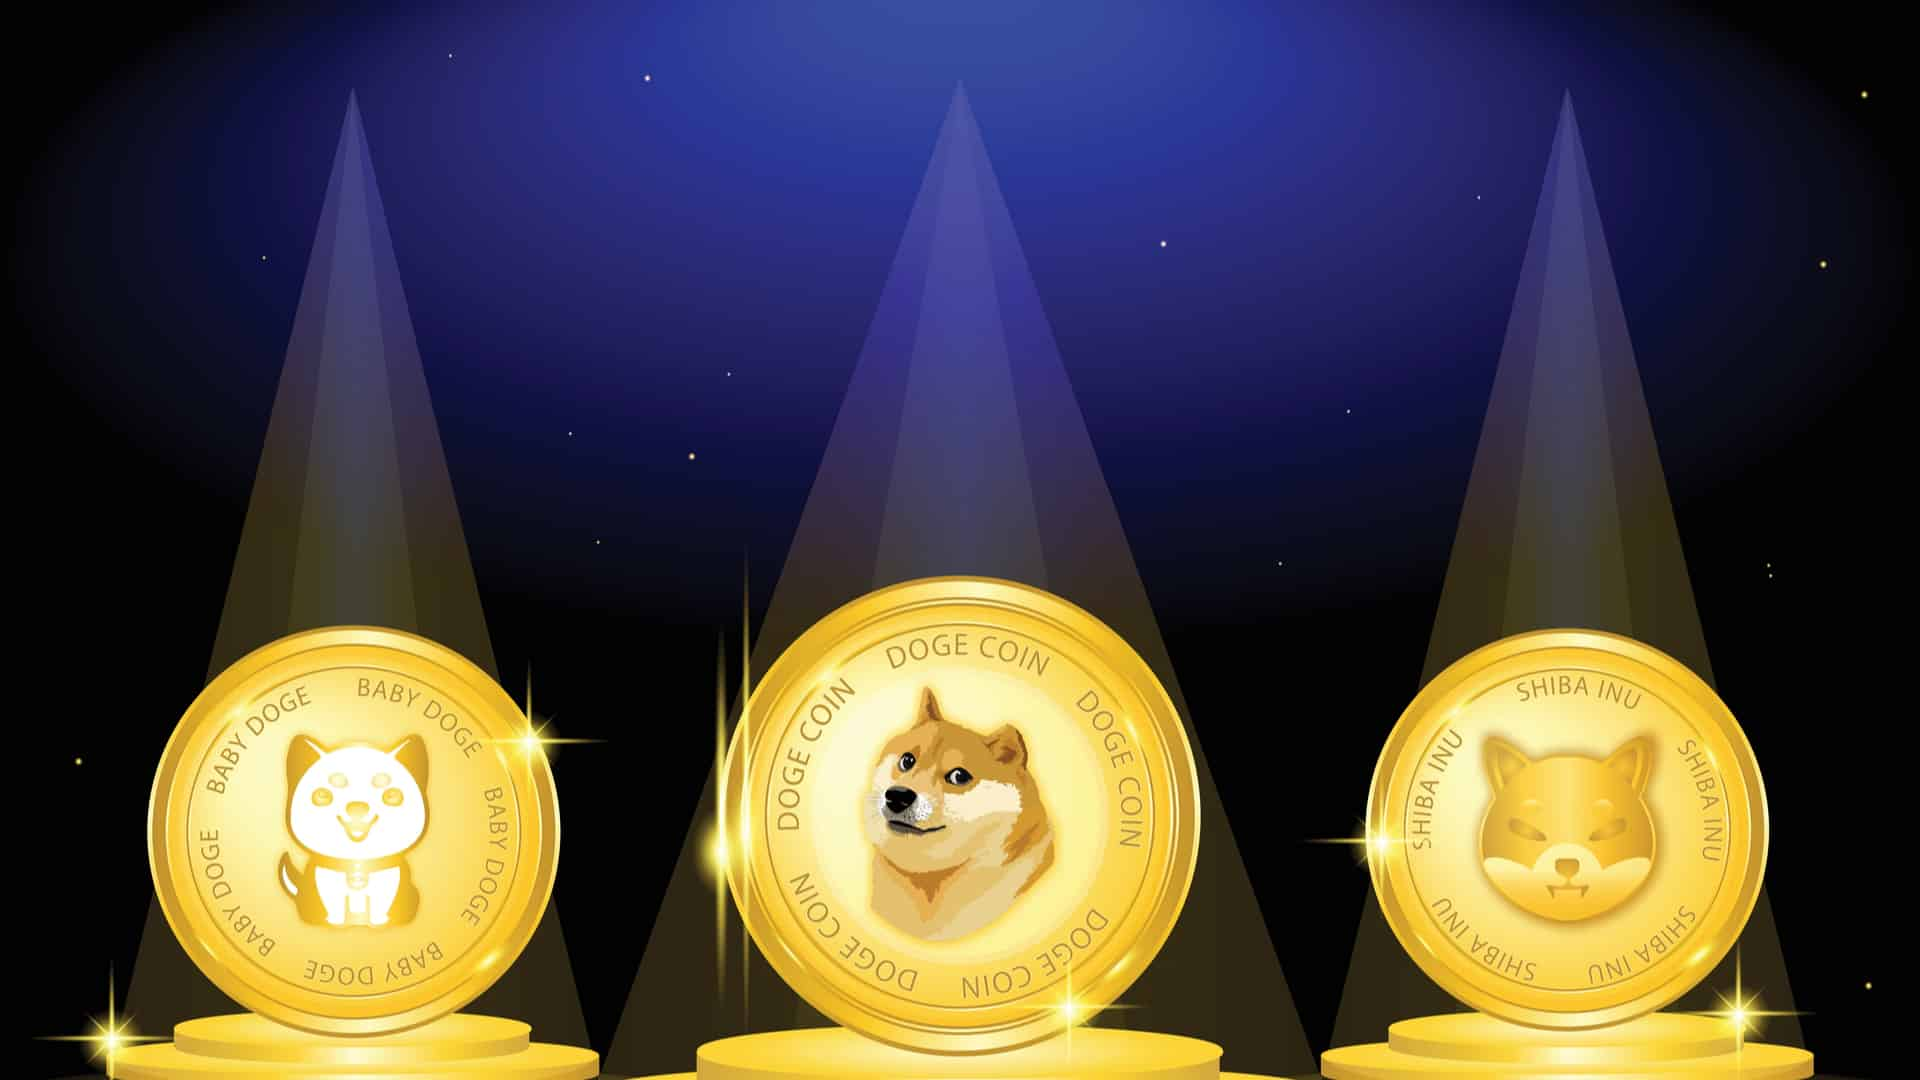 You won't believe what cryptocurrencies have made people millionaires this year